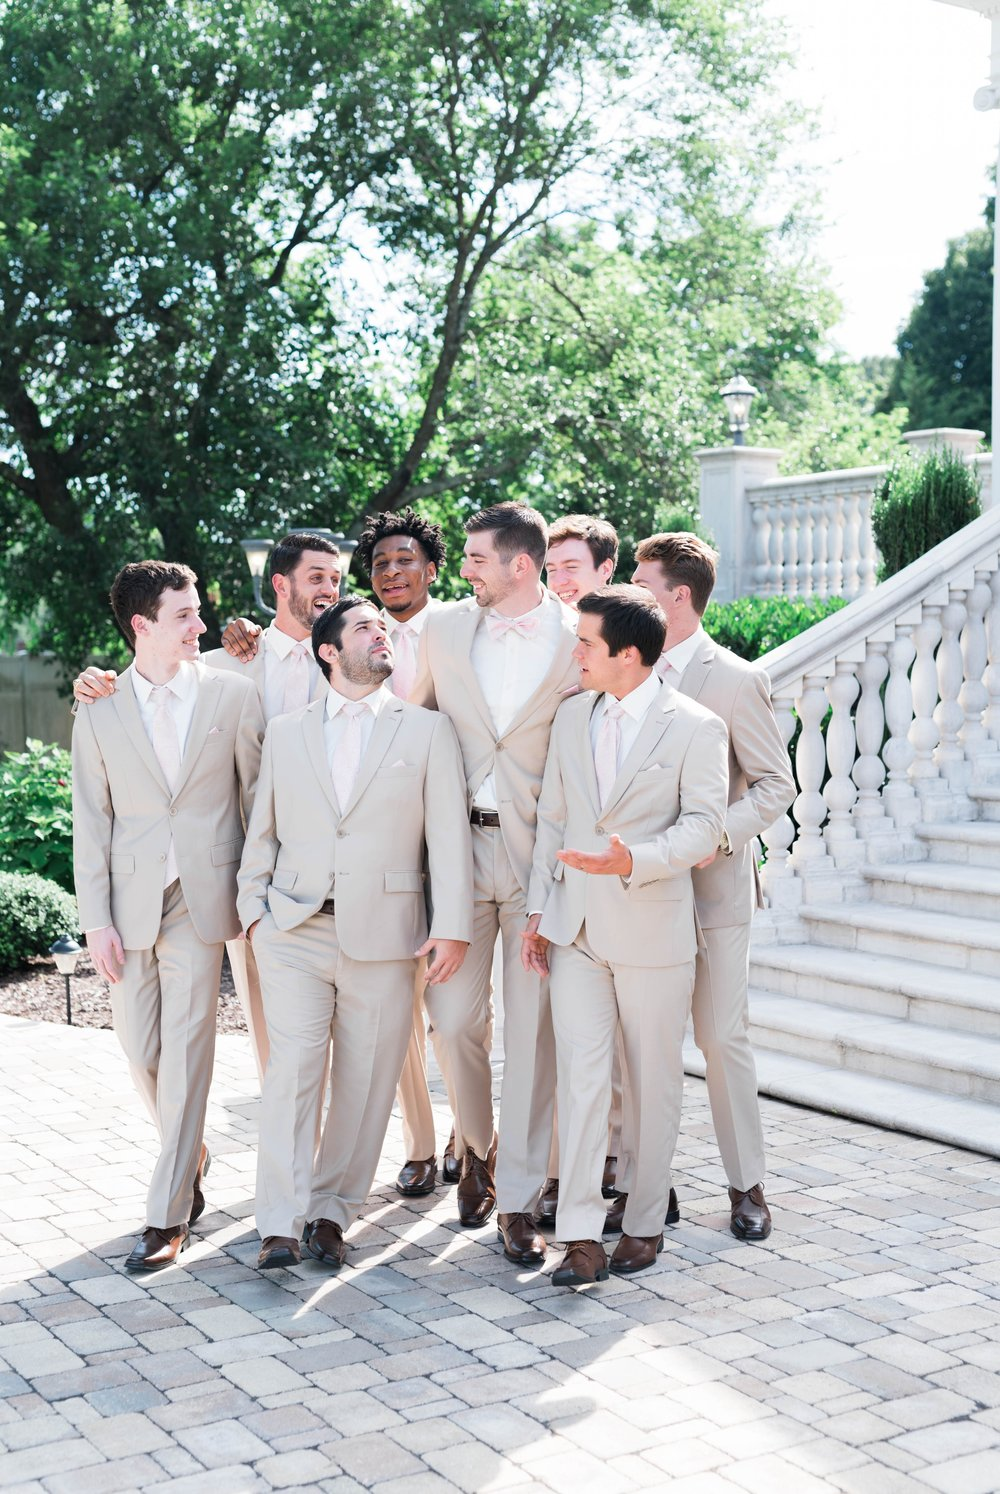 BedfordColumns_EntwinedEvents_Lynchburgwedding_VIrginiaweddingphotographer_ALlisonNIck 34.jpg